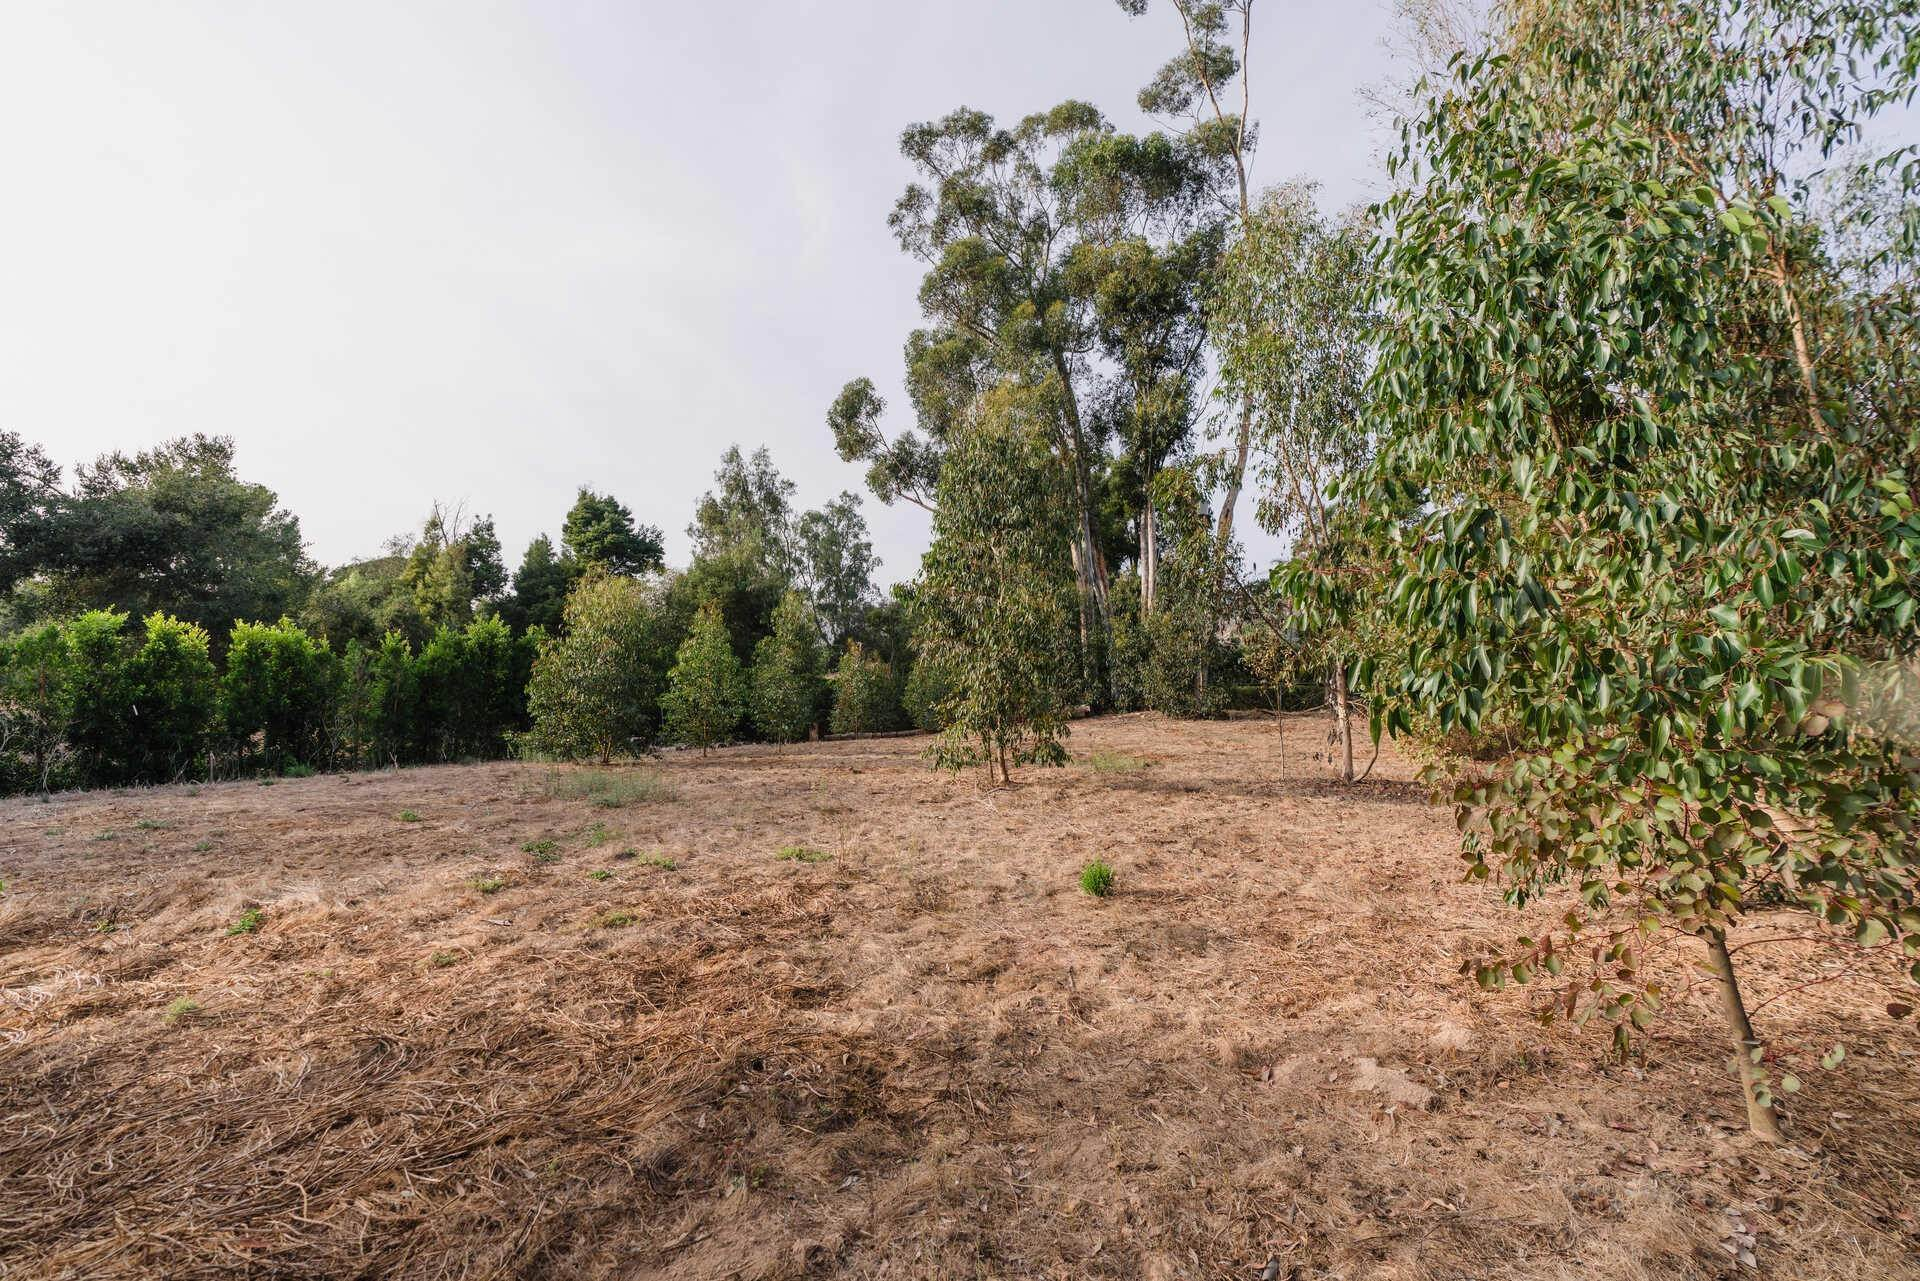 11. Lots / Land for Sale at 700 Riven Rock Road Montecito, California 93108 United States